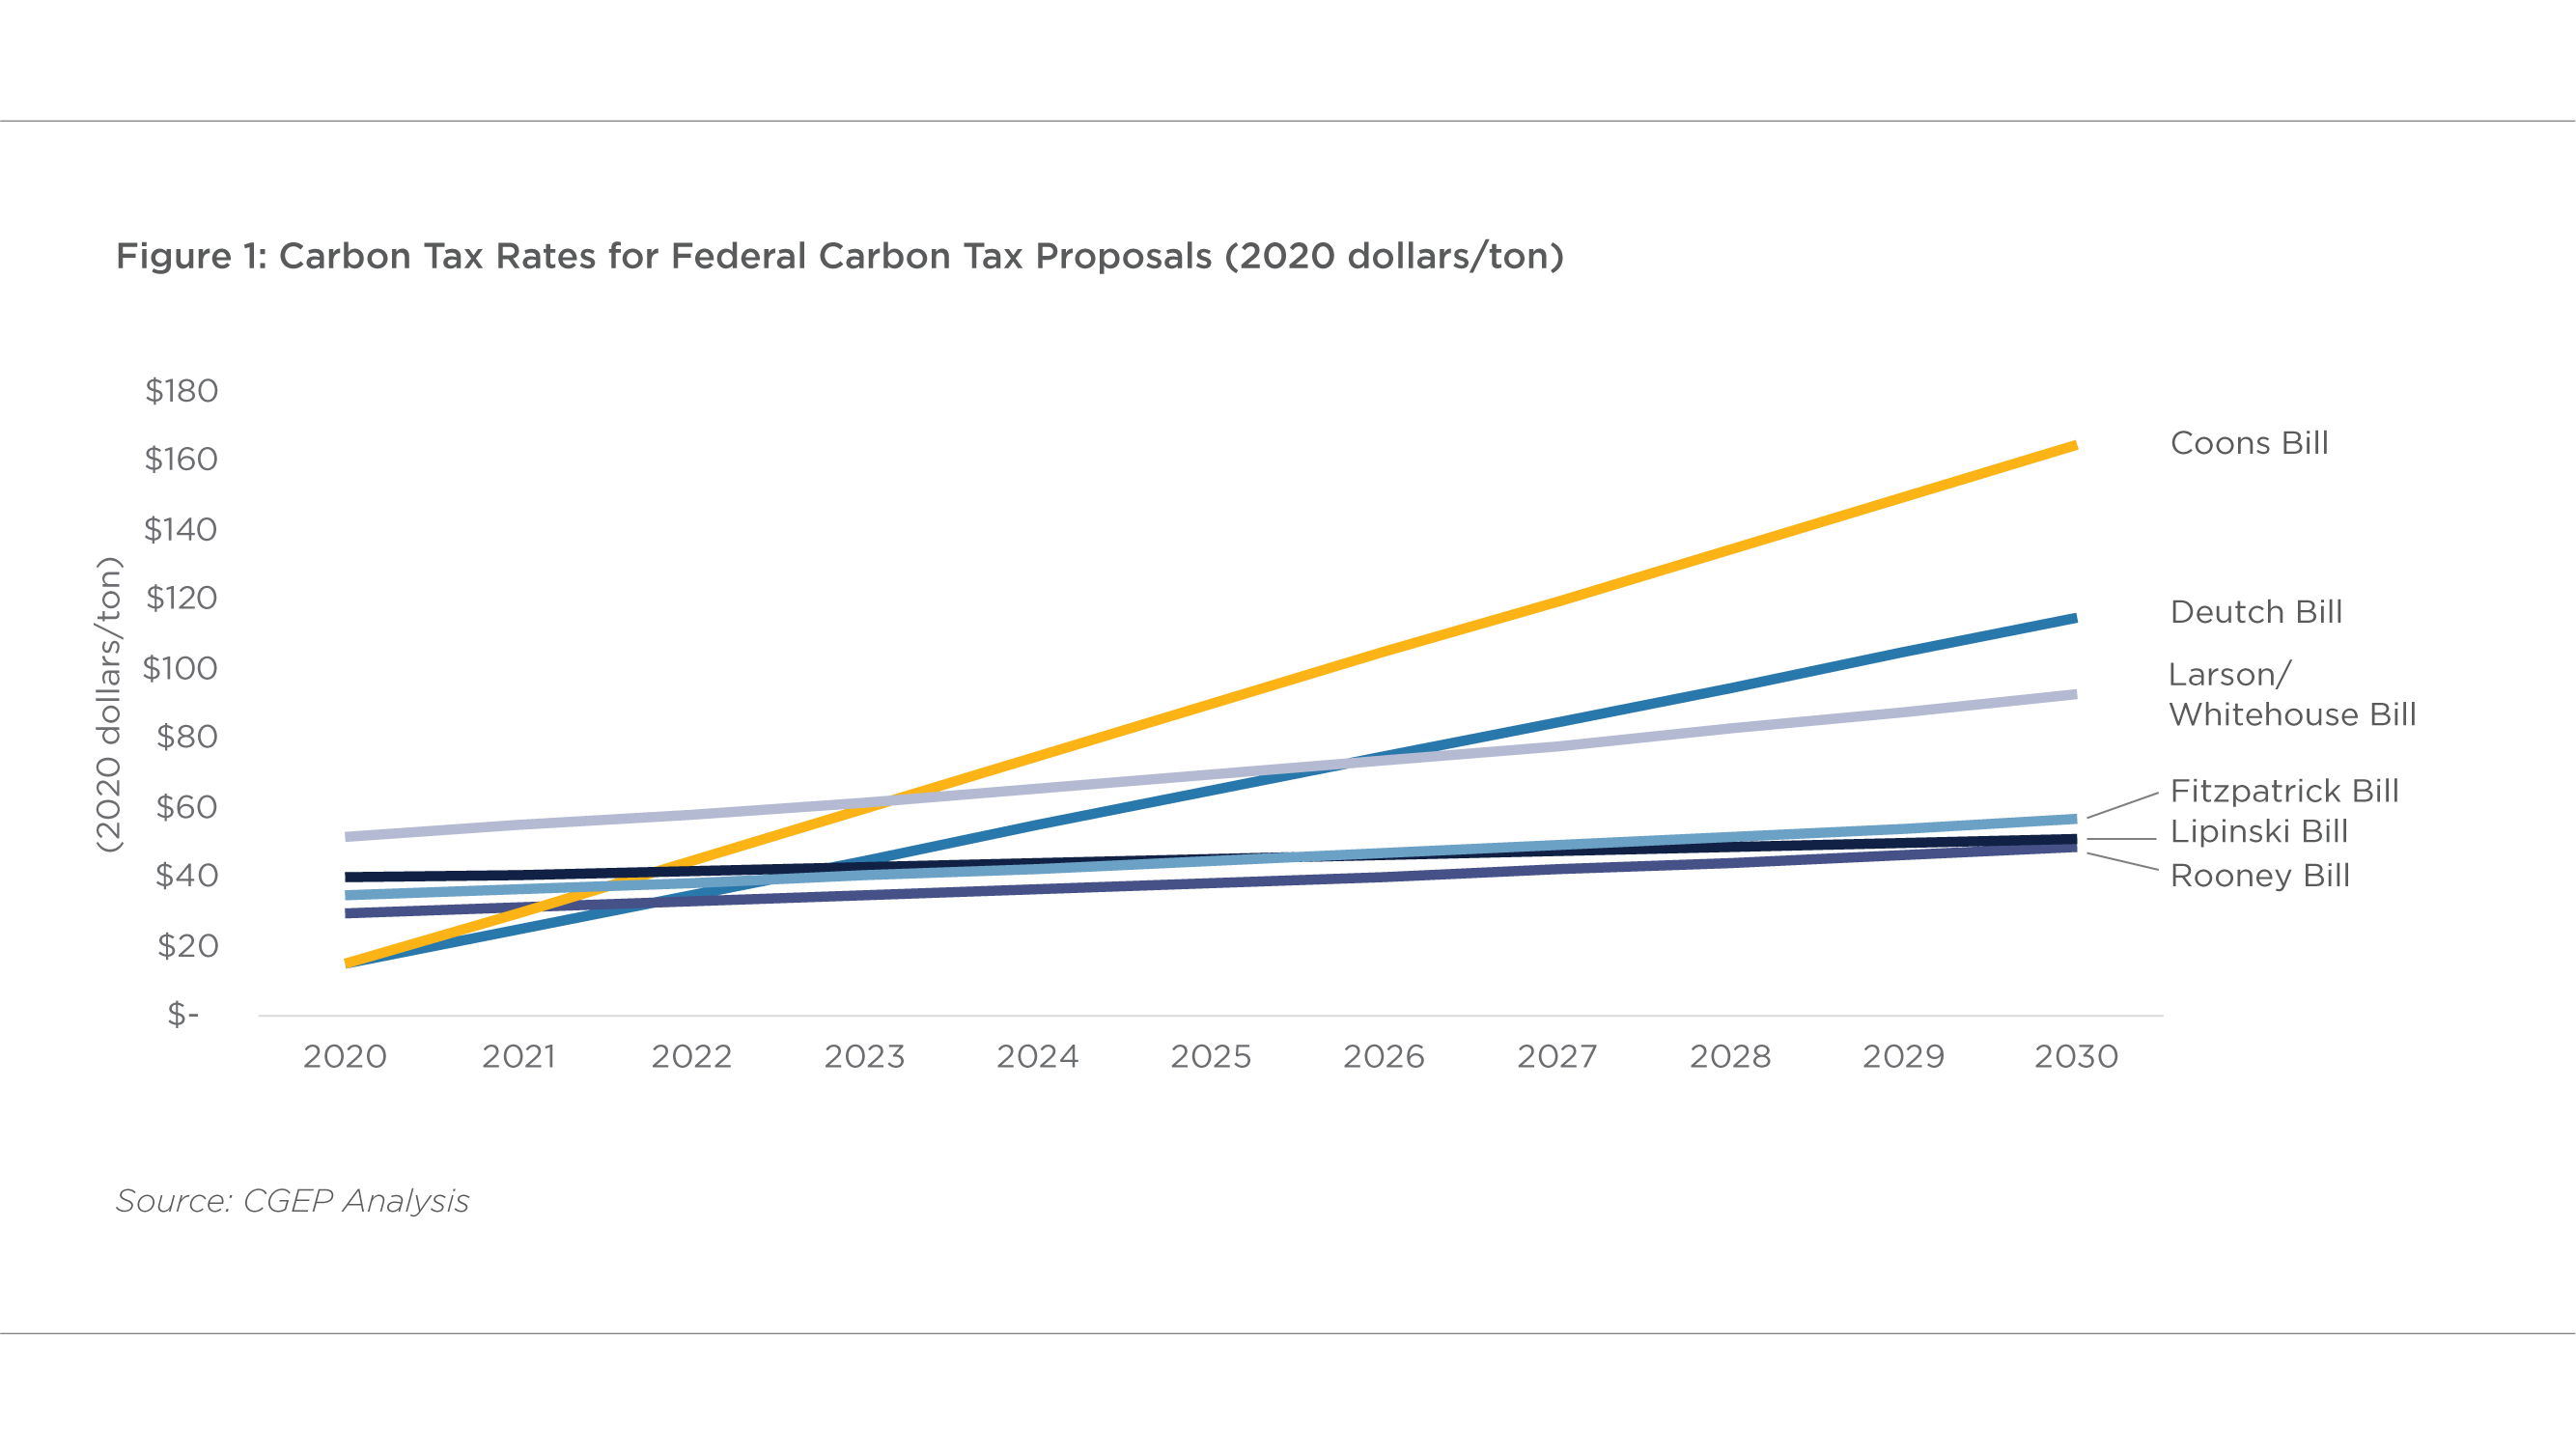 Carbon Tax Rates for Federal Carbon Tax Proposals (2019 Dollars/Ton)